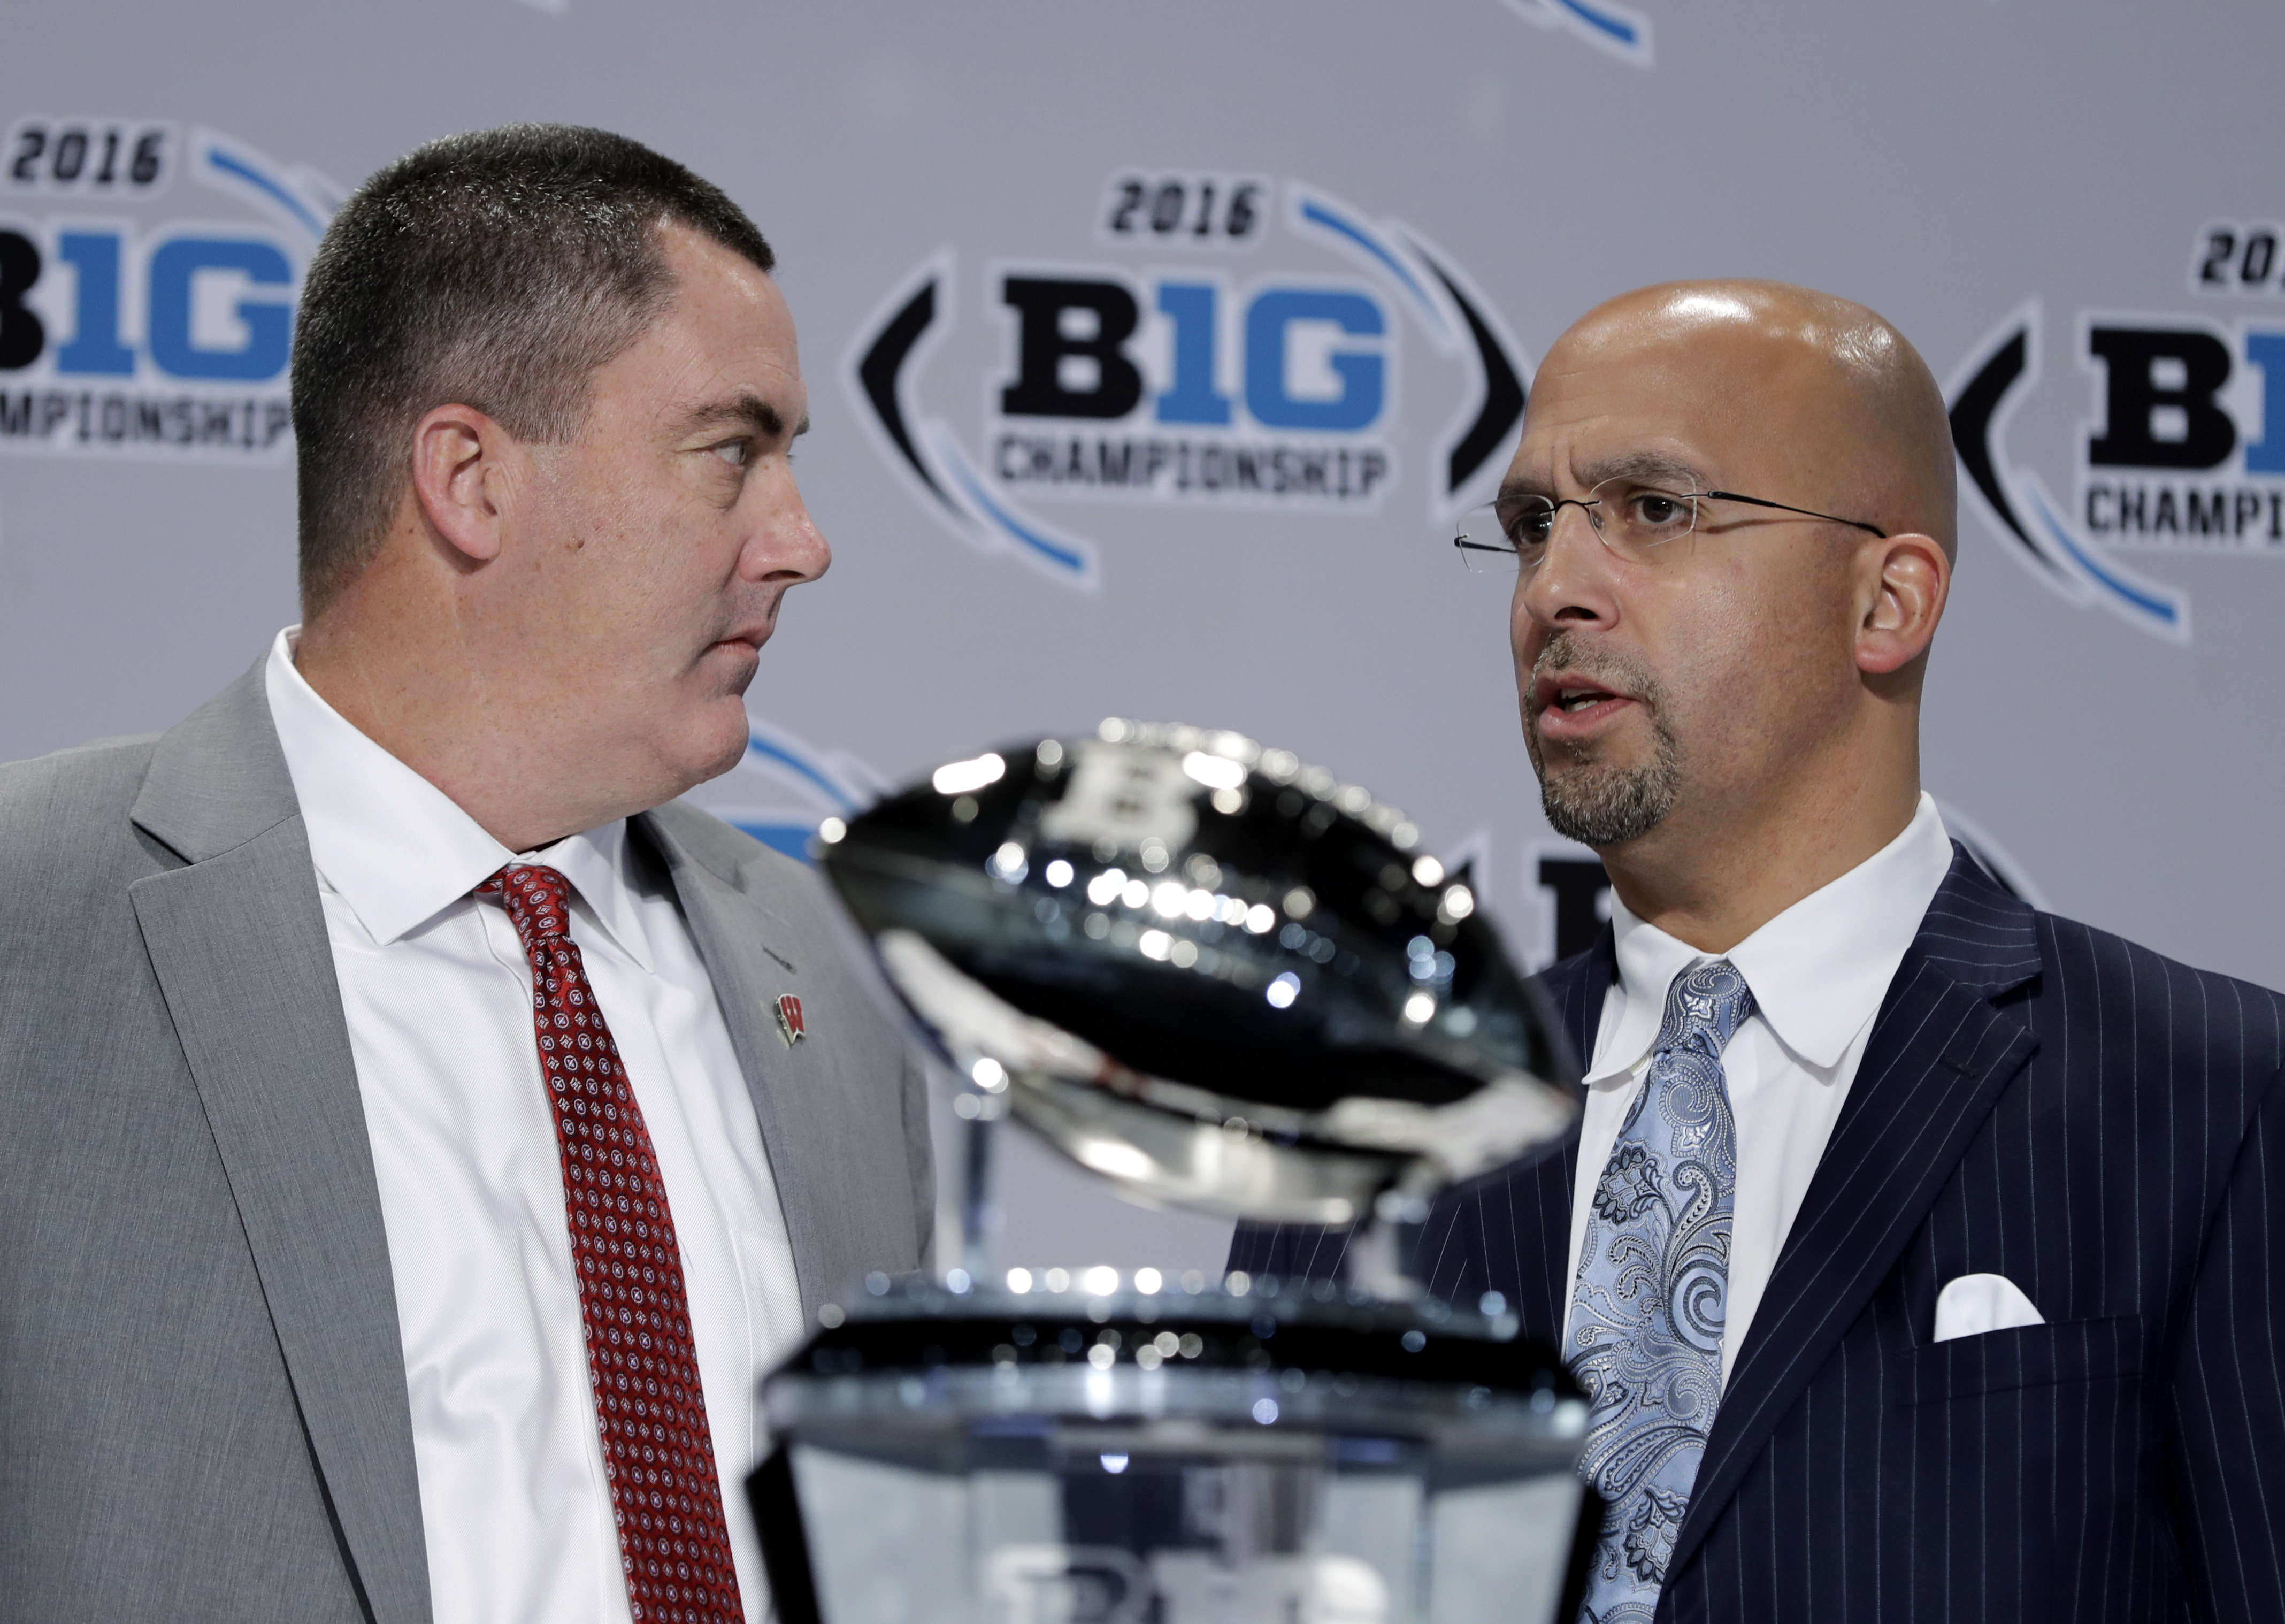 Wisconsin head coach Paul Chryst talks with Penn State head coach James Franklin during a news conference for the Big Ten Conference championship NCAA college football game Friday, Dec. 2, 2016, in Indianapolis. Wisconsin will play Penn State Saturday for